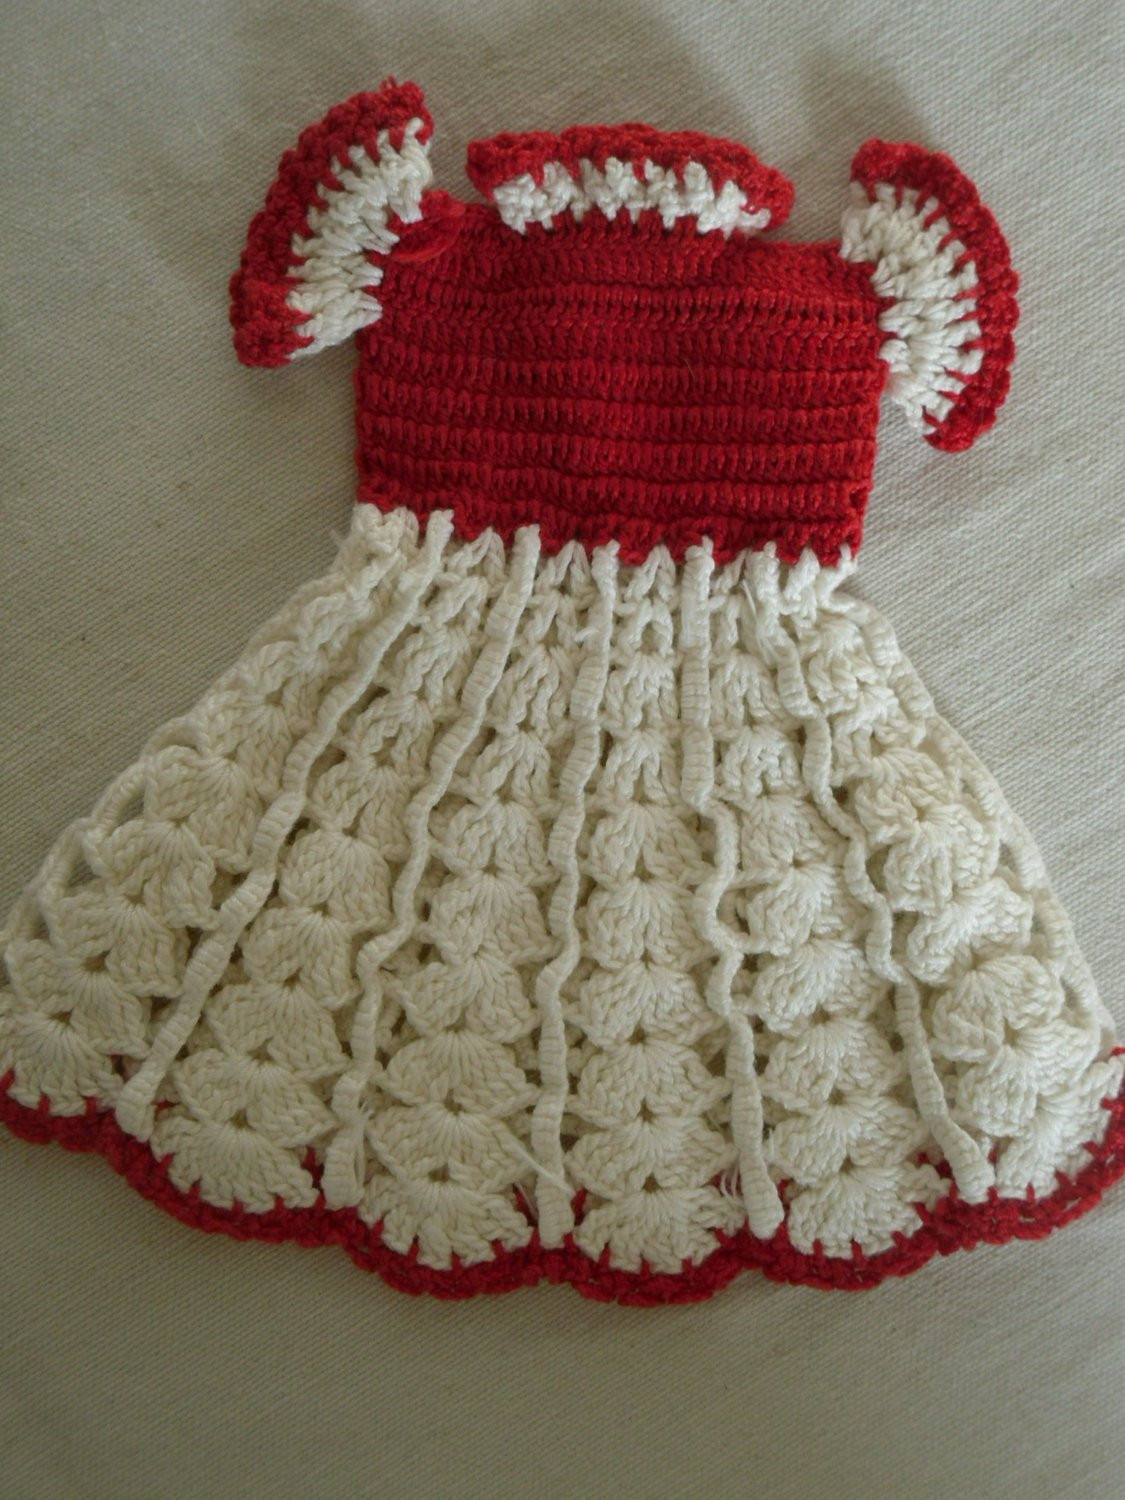 New Crocheting Doll Clothes Free Crochet Doll Dress Patterns Of Top 50 Photos Free Crochet Doll Dress Patterns